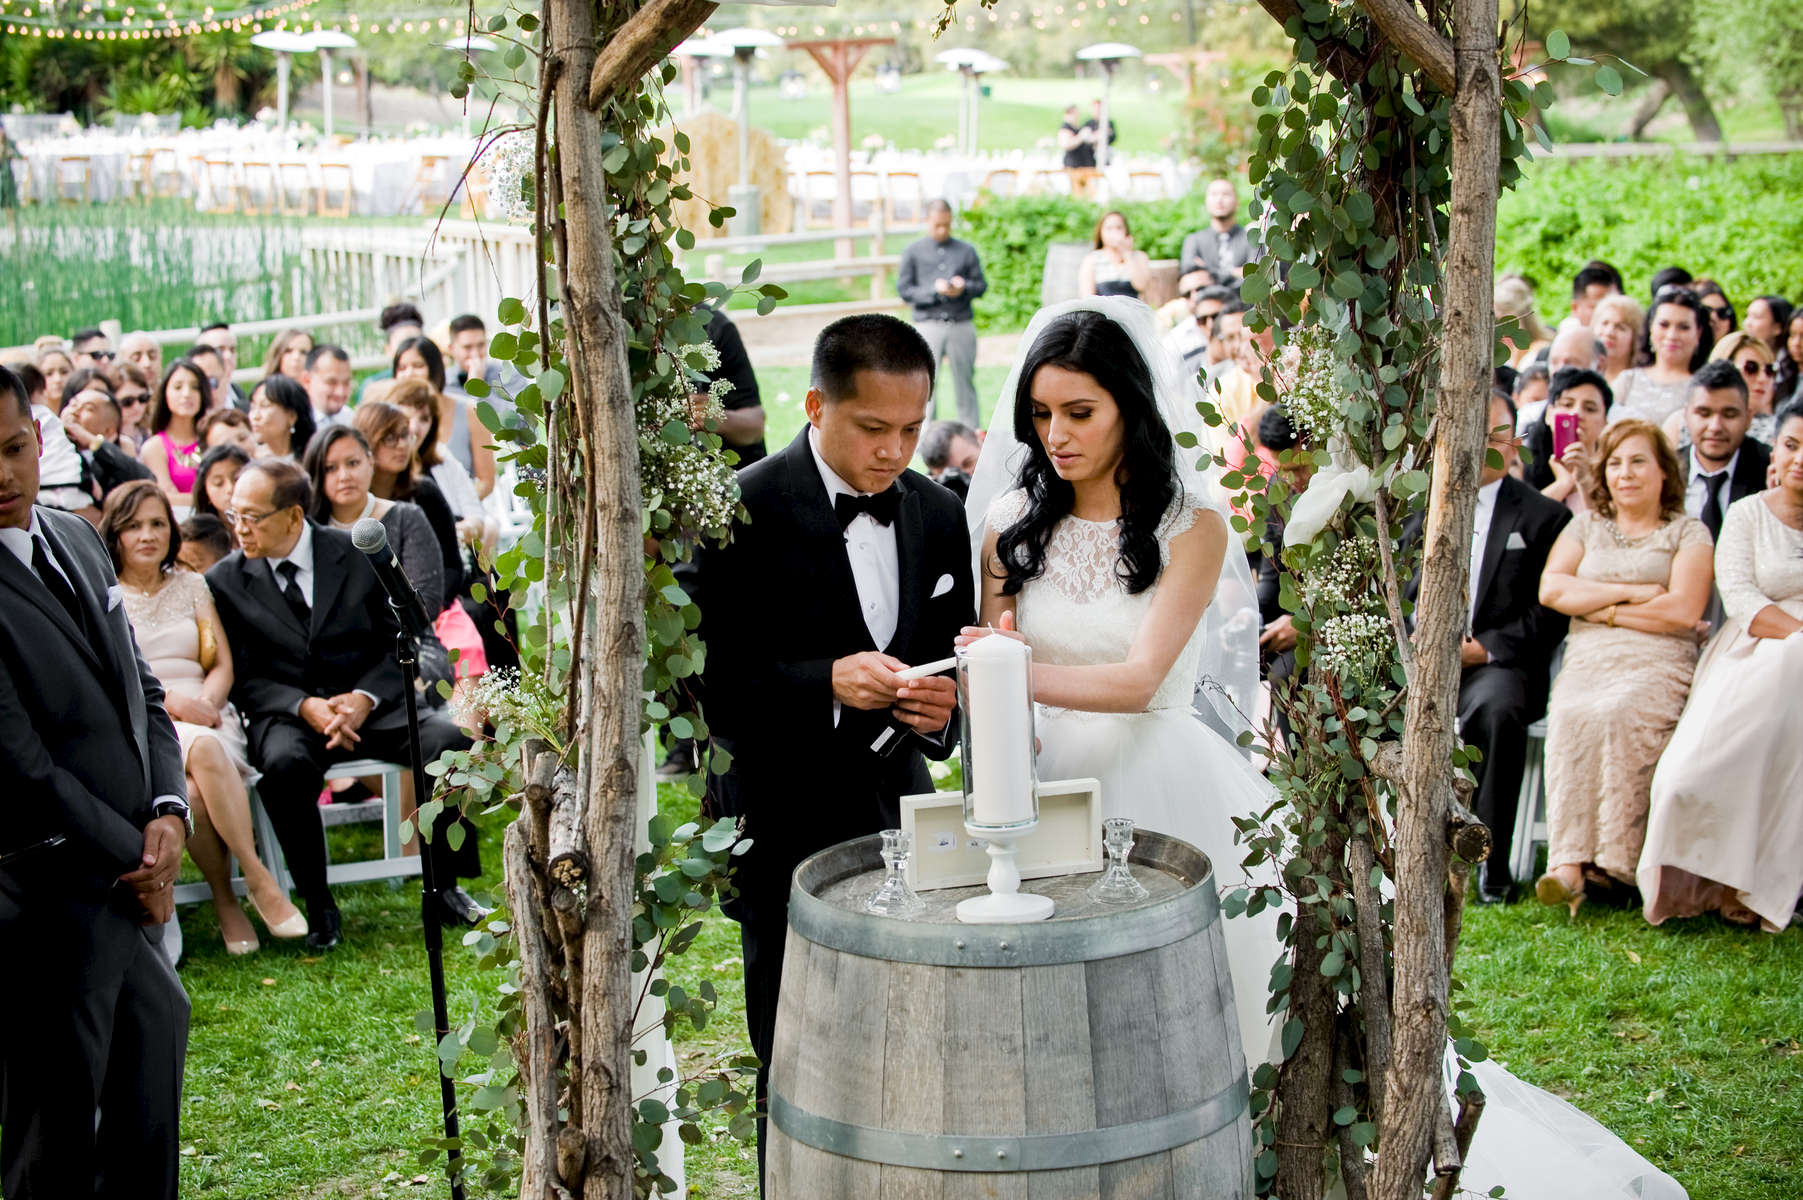 Francis Tangonan and Veronica Navarro from Buena Park, Calif., become husband and wife surrounded by their friends and family at the Temecula Creek Inn in Temecula, Calif. on Thursday, March 20, 2016.  Mr. and Mrs. Tangonan had the time of their life celebrating under the oak trees and could not to leave for their honeymoon to St. Lucia and New York the following day.  Congratulations.  (Photo by: Meagan Reidinger © 2016)